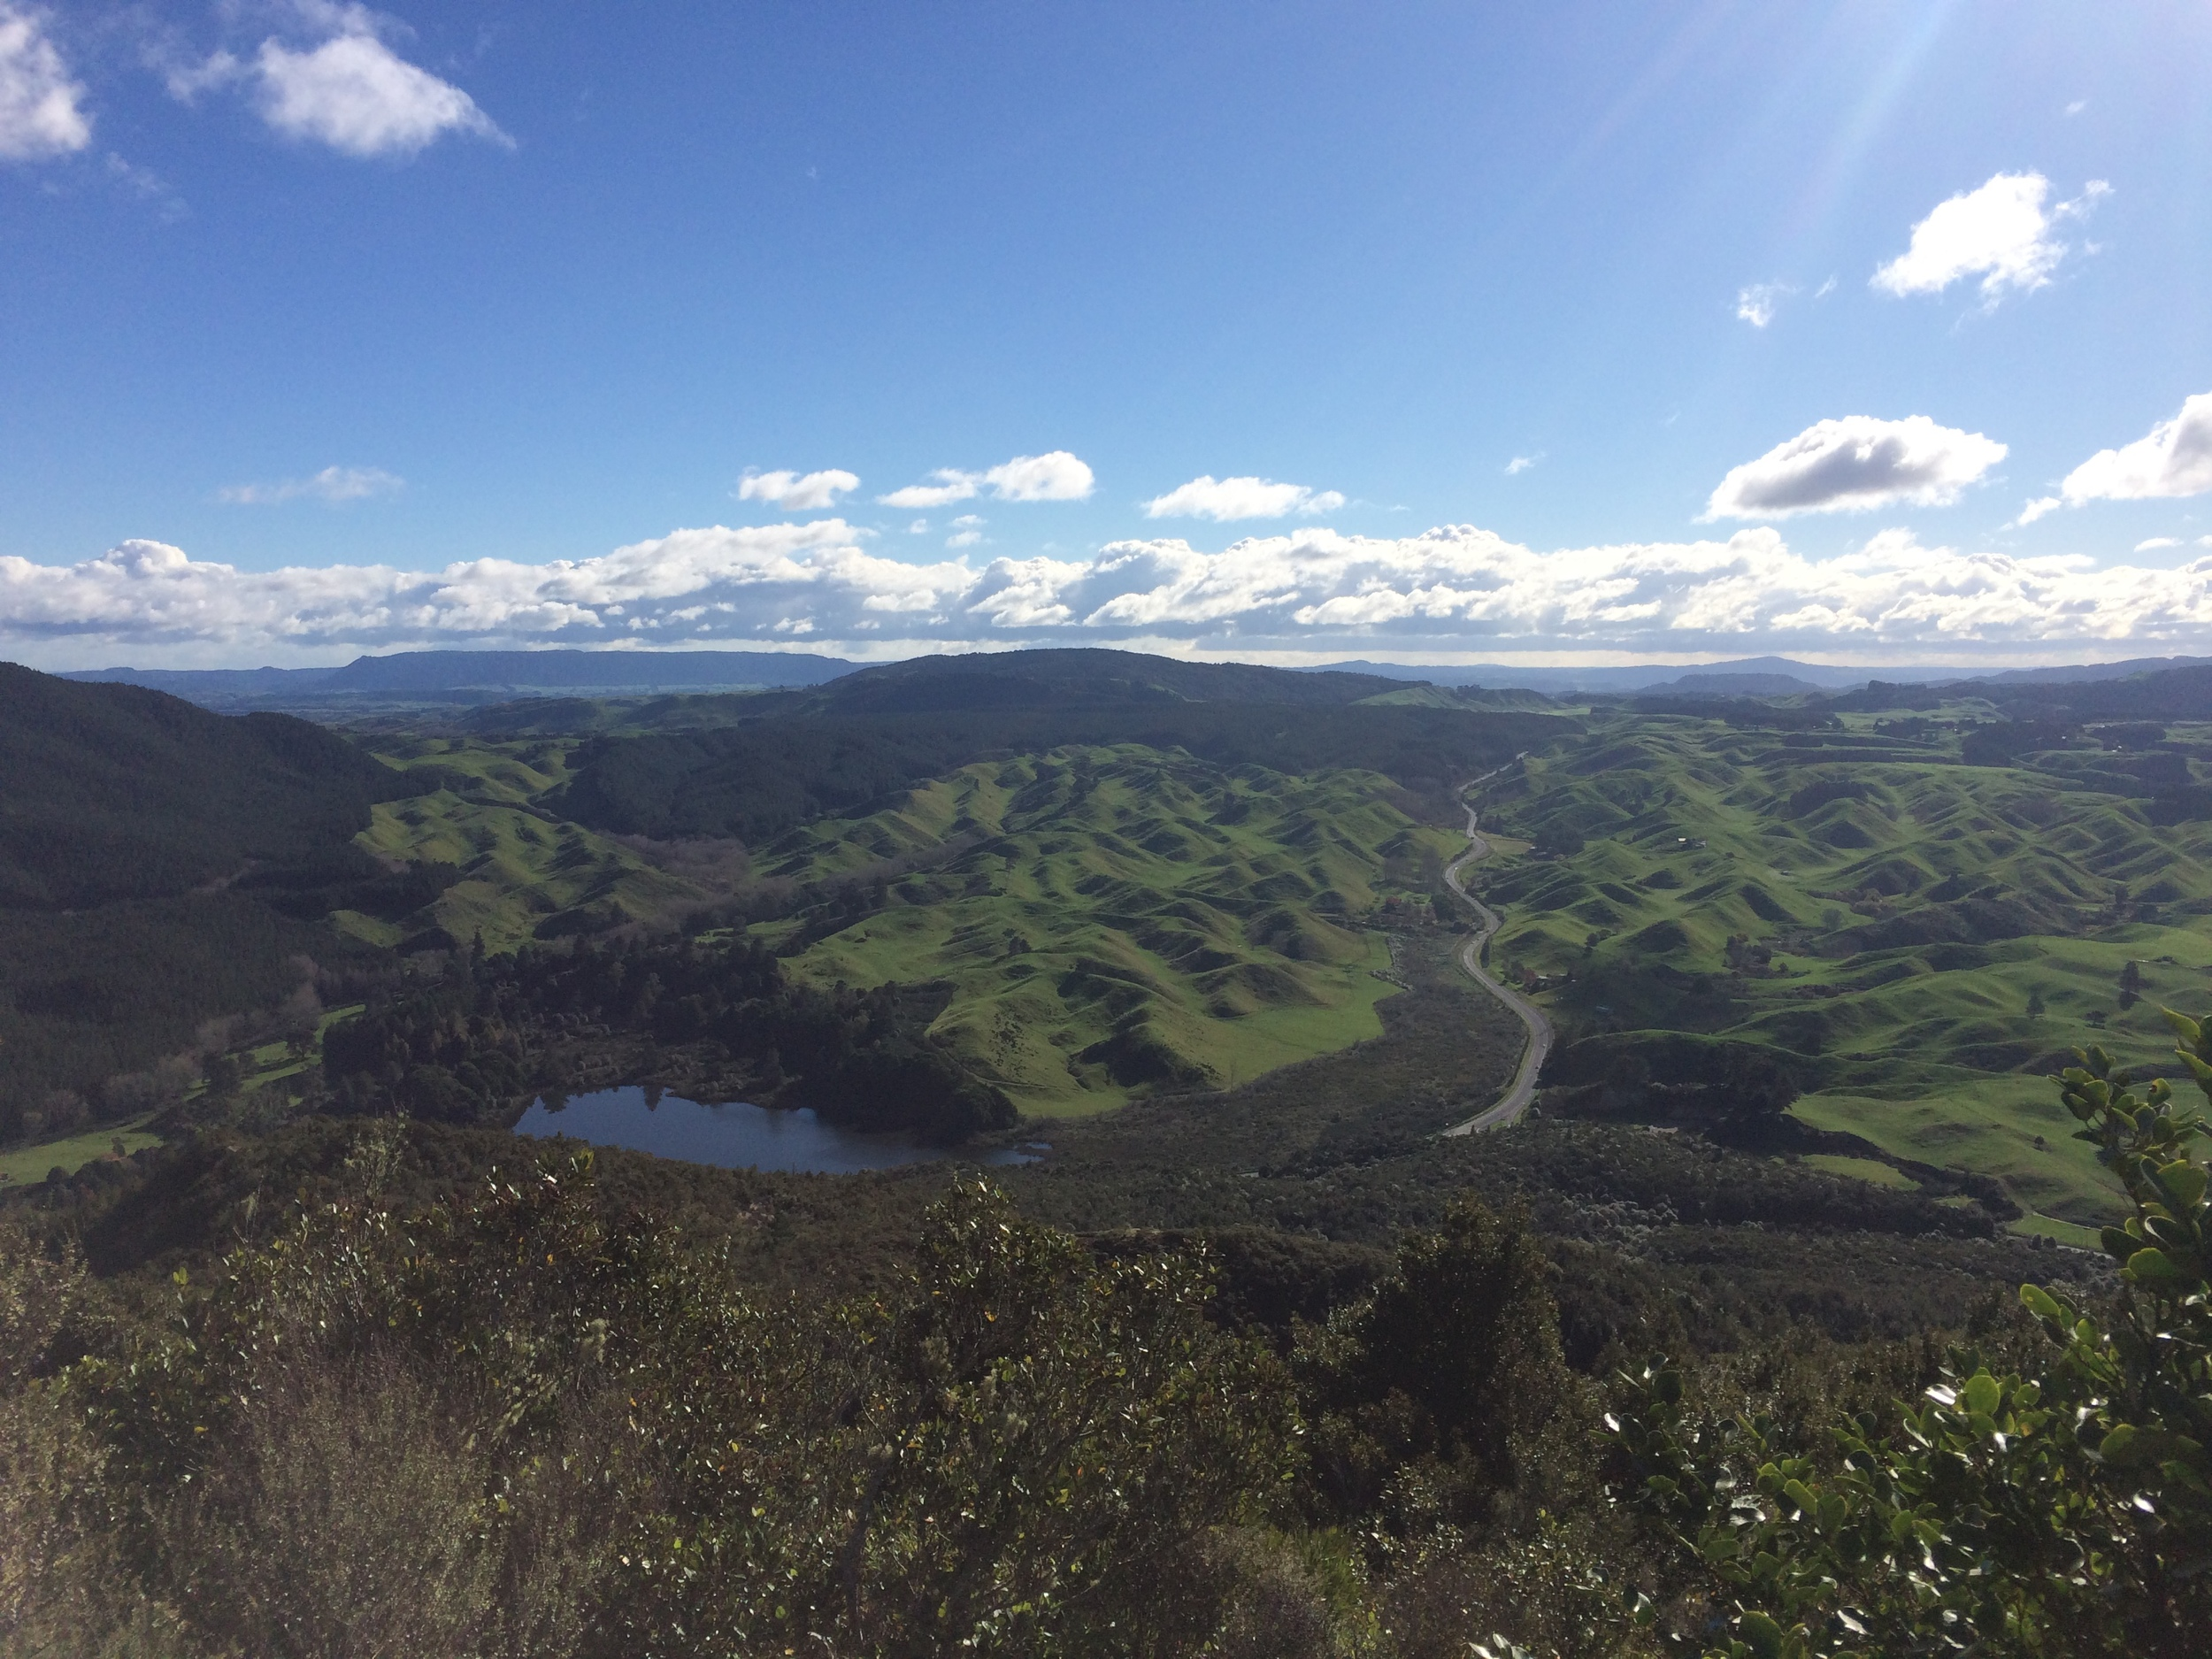 View of the Rotorua area from Rainbow Mountain